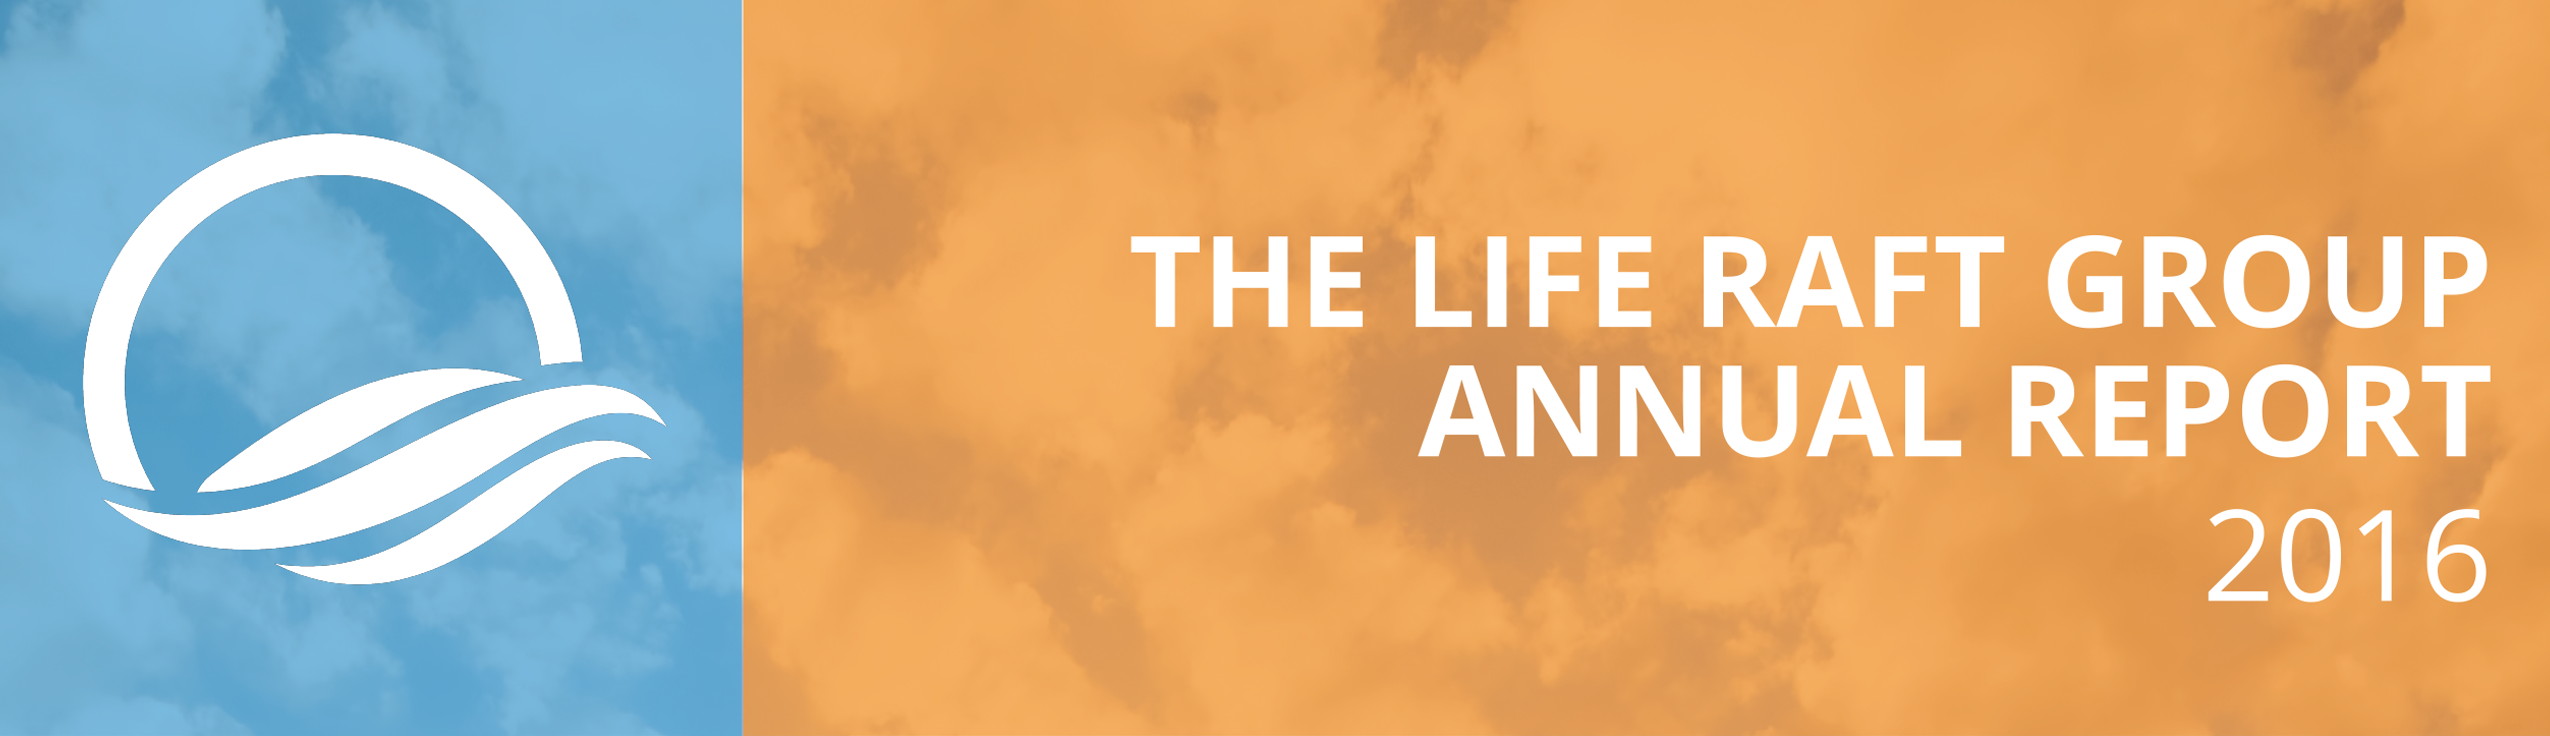 The Life Raft Group Annual Report 2016